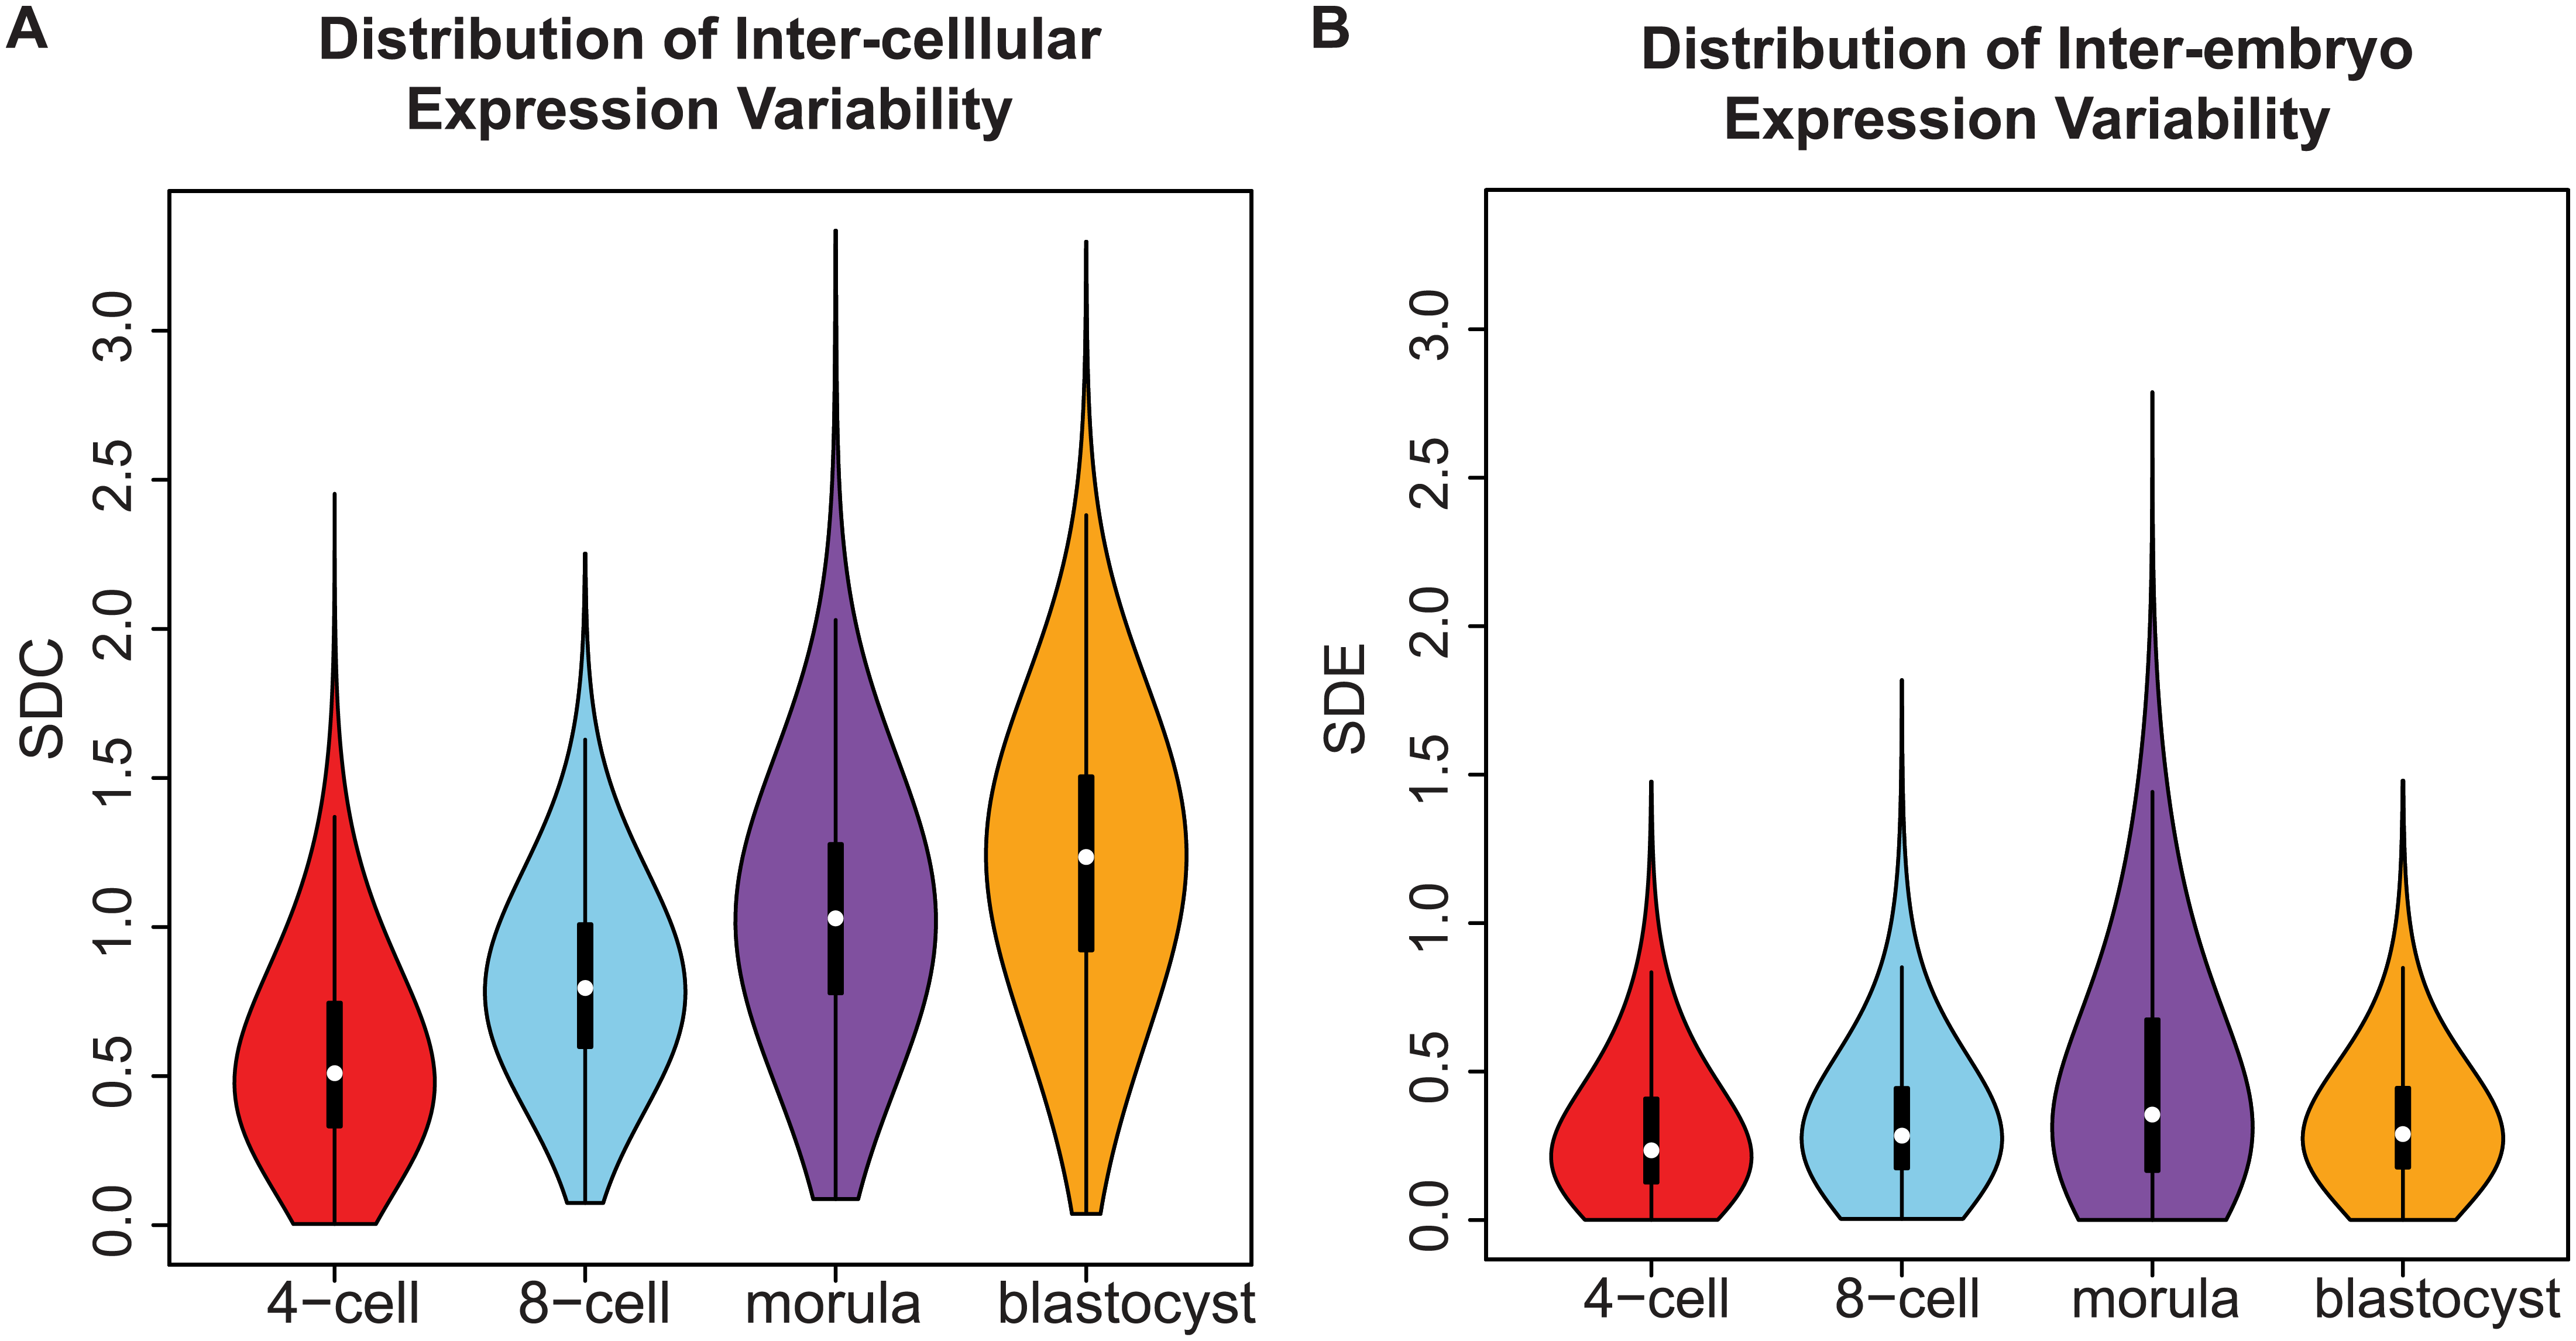 Distribution of gene expression variability during embryonic development.